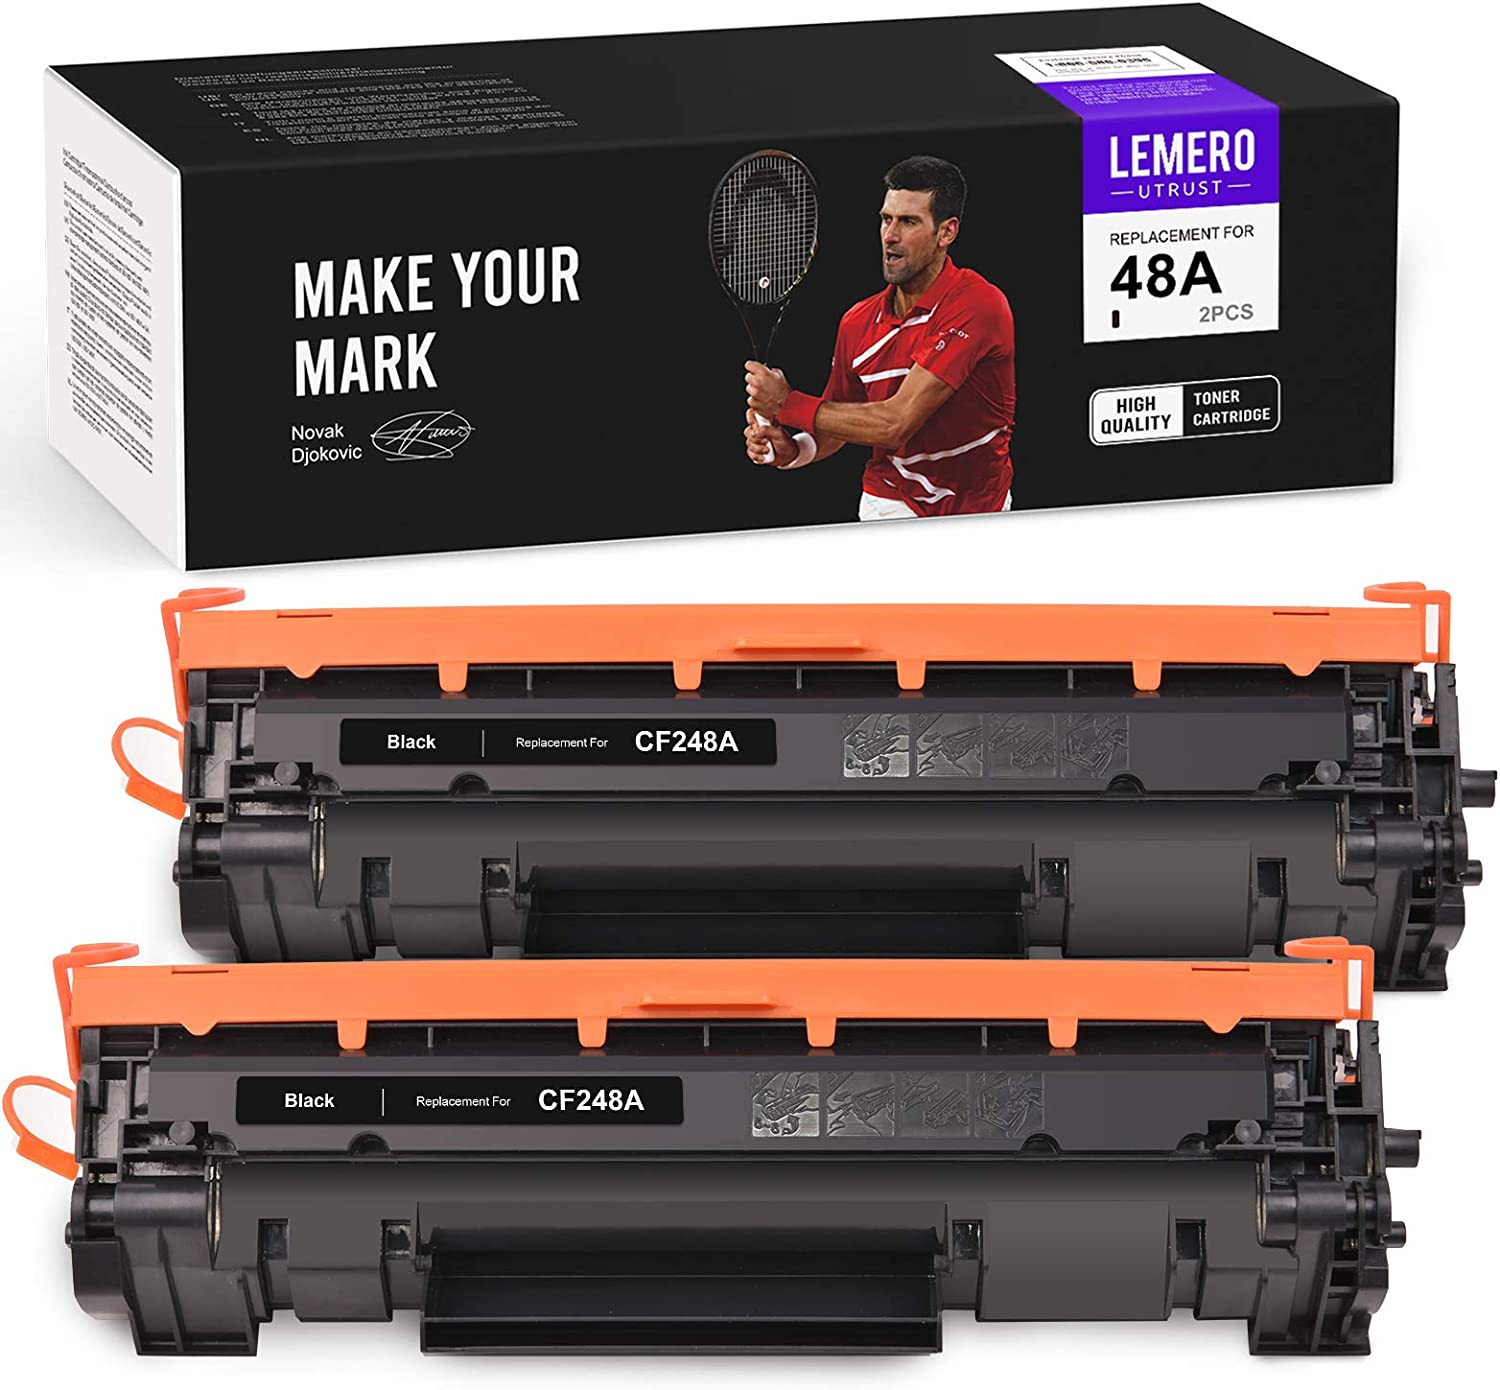 LemeroUtrust Compatible Toner Cartridge Replacement for HP 48A CF248A use with HP Laserjet Pro MFP M29 M29w M29a M28 M28w M28a Laserjet Pro M15w M15A M15 M16w M16a M16 (Black, 2-Pack)